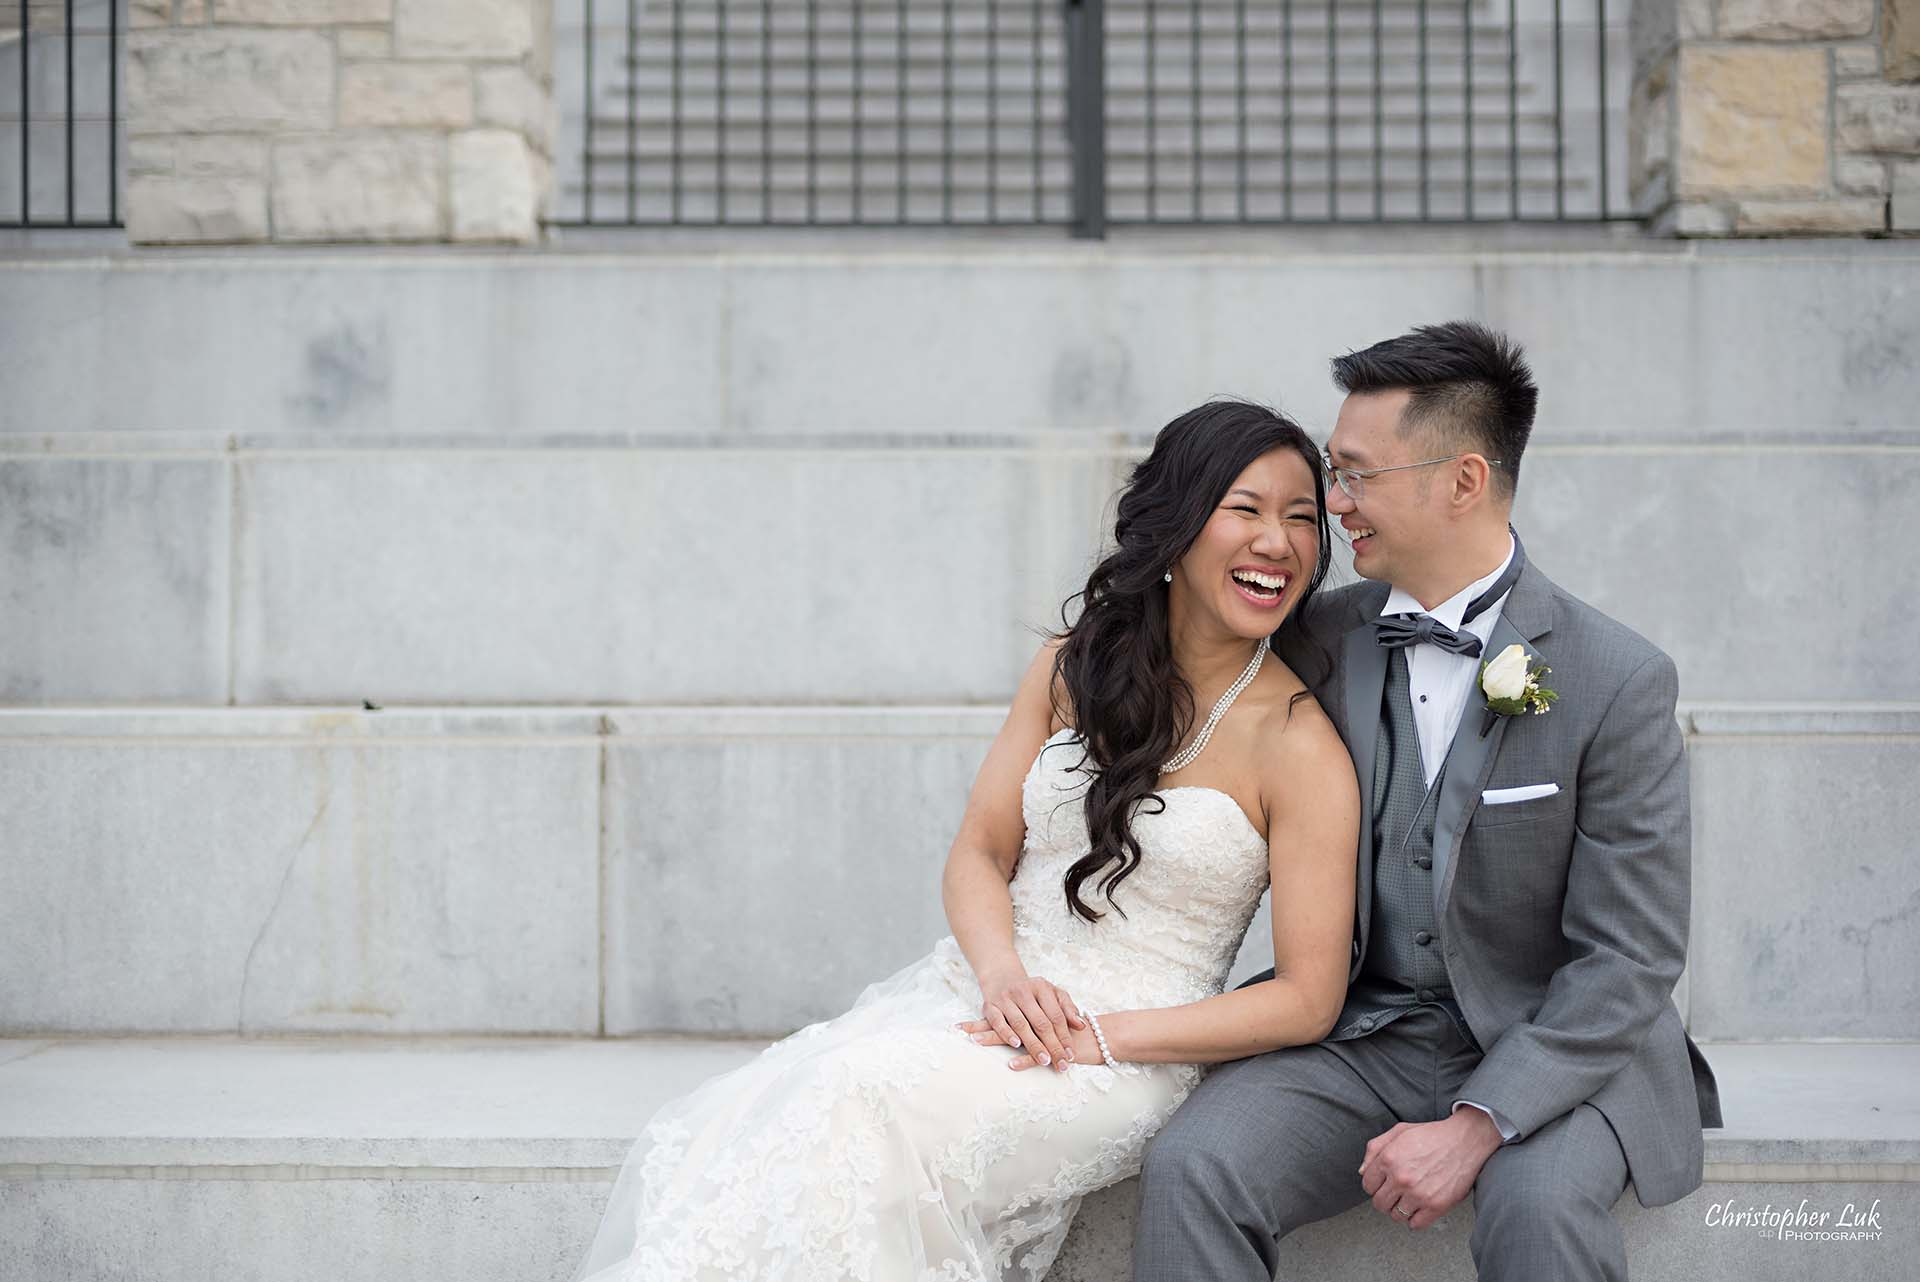 Christopher Luk Toronto Wedding Photographer Eagles Nest Golf Club Course Clubhouse Staircase Entrance Bride Groom Natural Candid Photojournalistic Sitting Laughing Smile